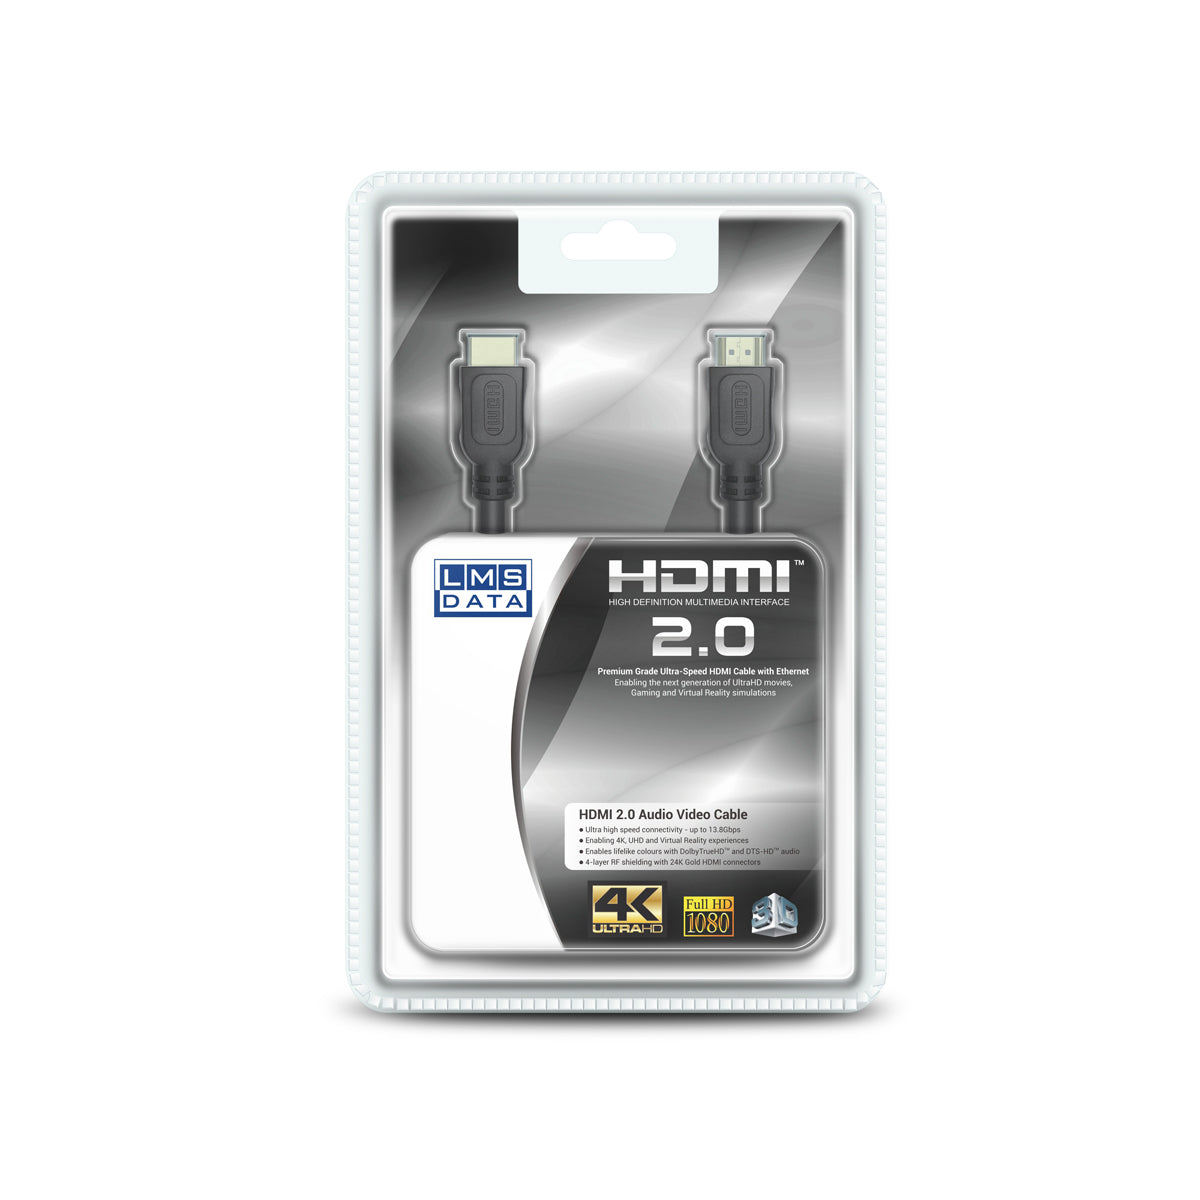 High Speed 4K HDMI2.0 Cable - 1.0m (Retail Blister)